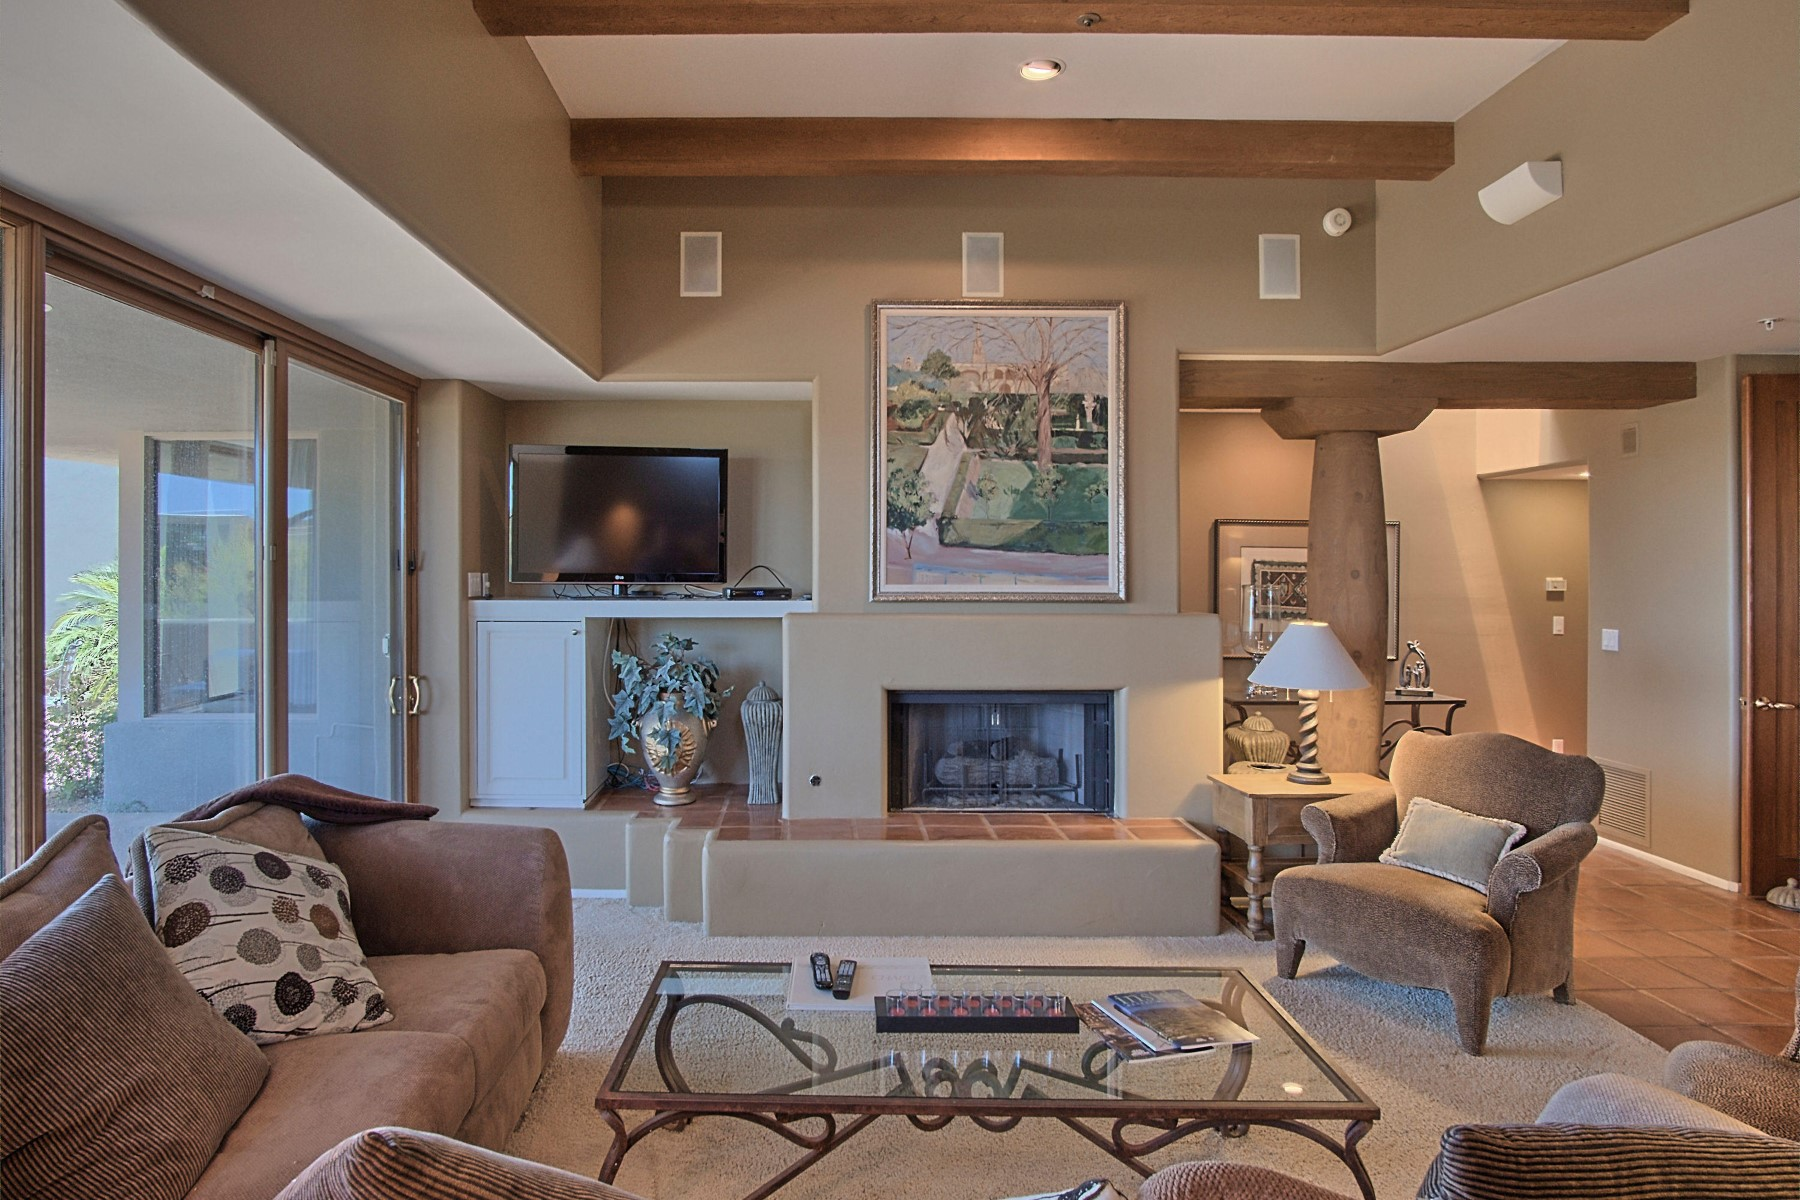 Additional photo for property listing at Beautiful townhome in Desert Mountain 10095 E Grayhorn Dr Scottsdale, Arizona 85262 United States